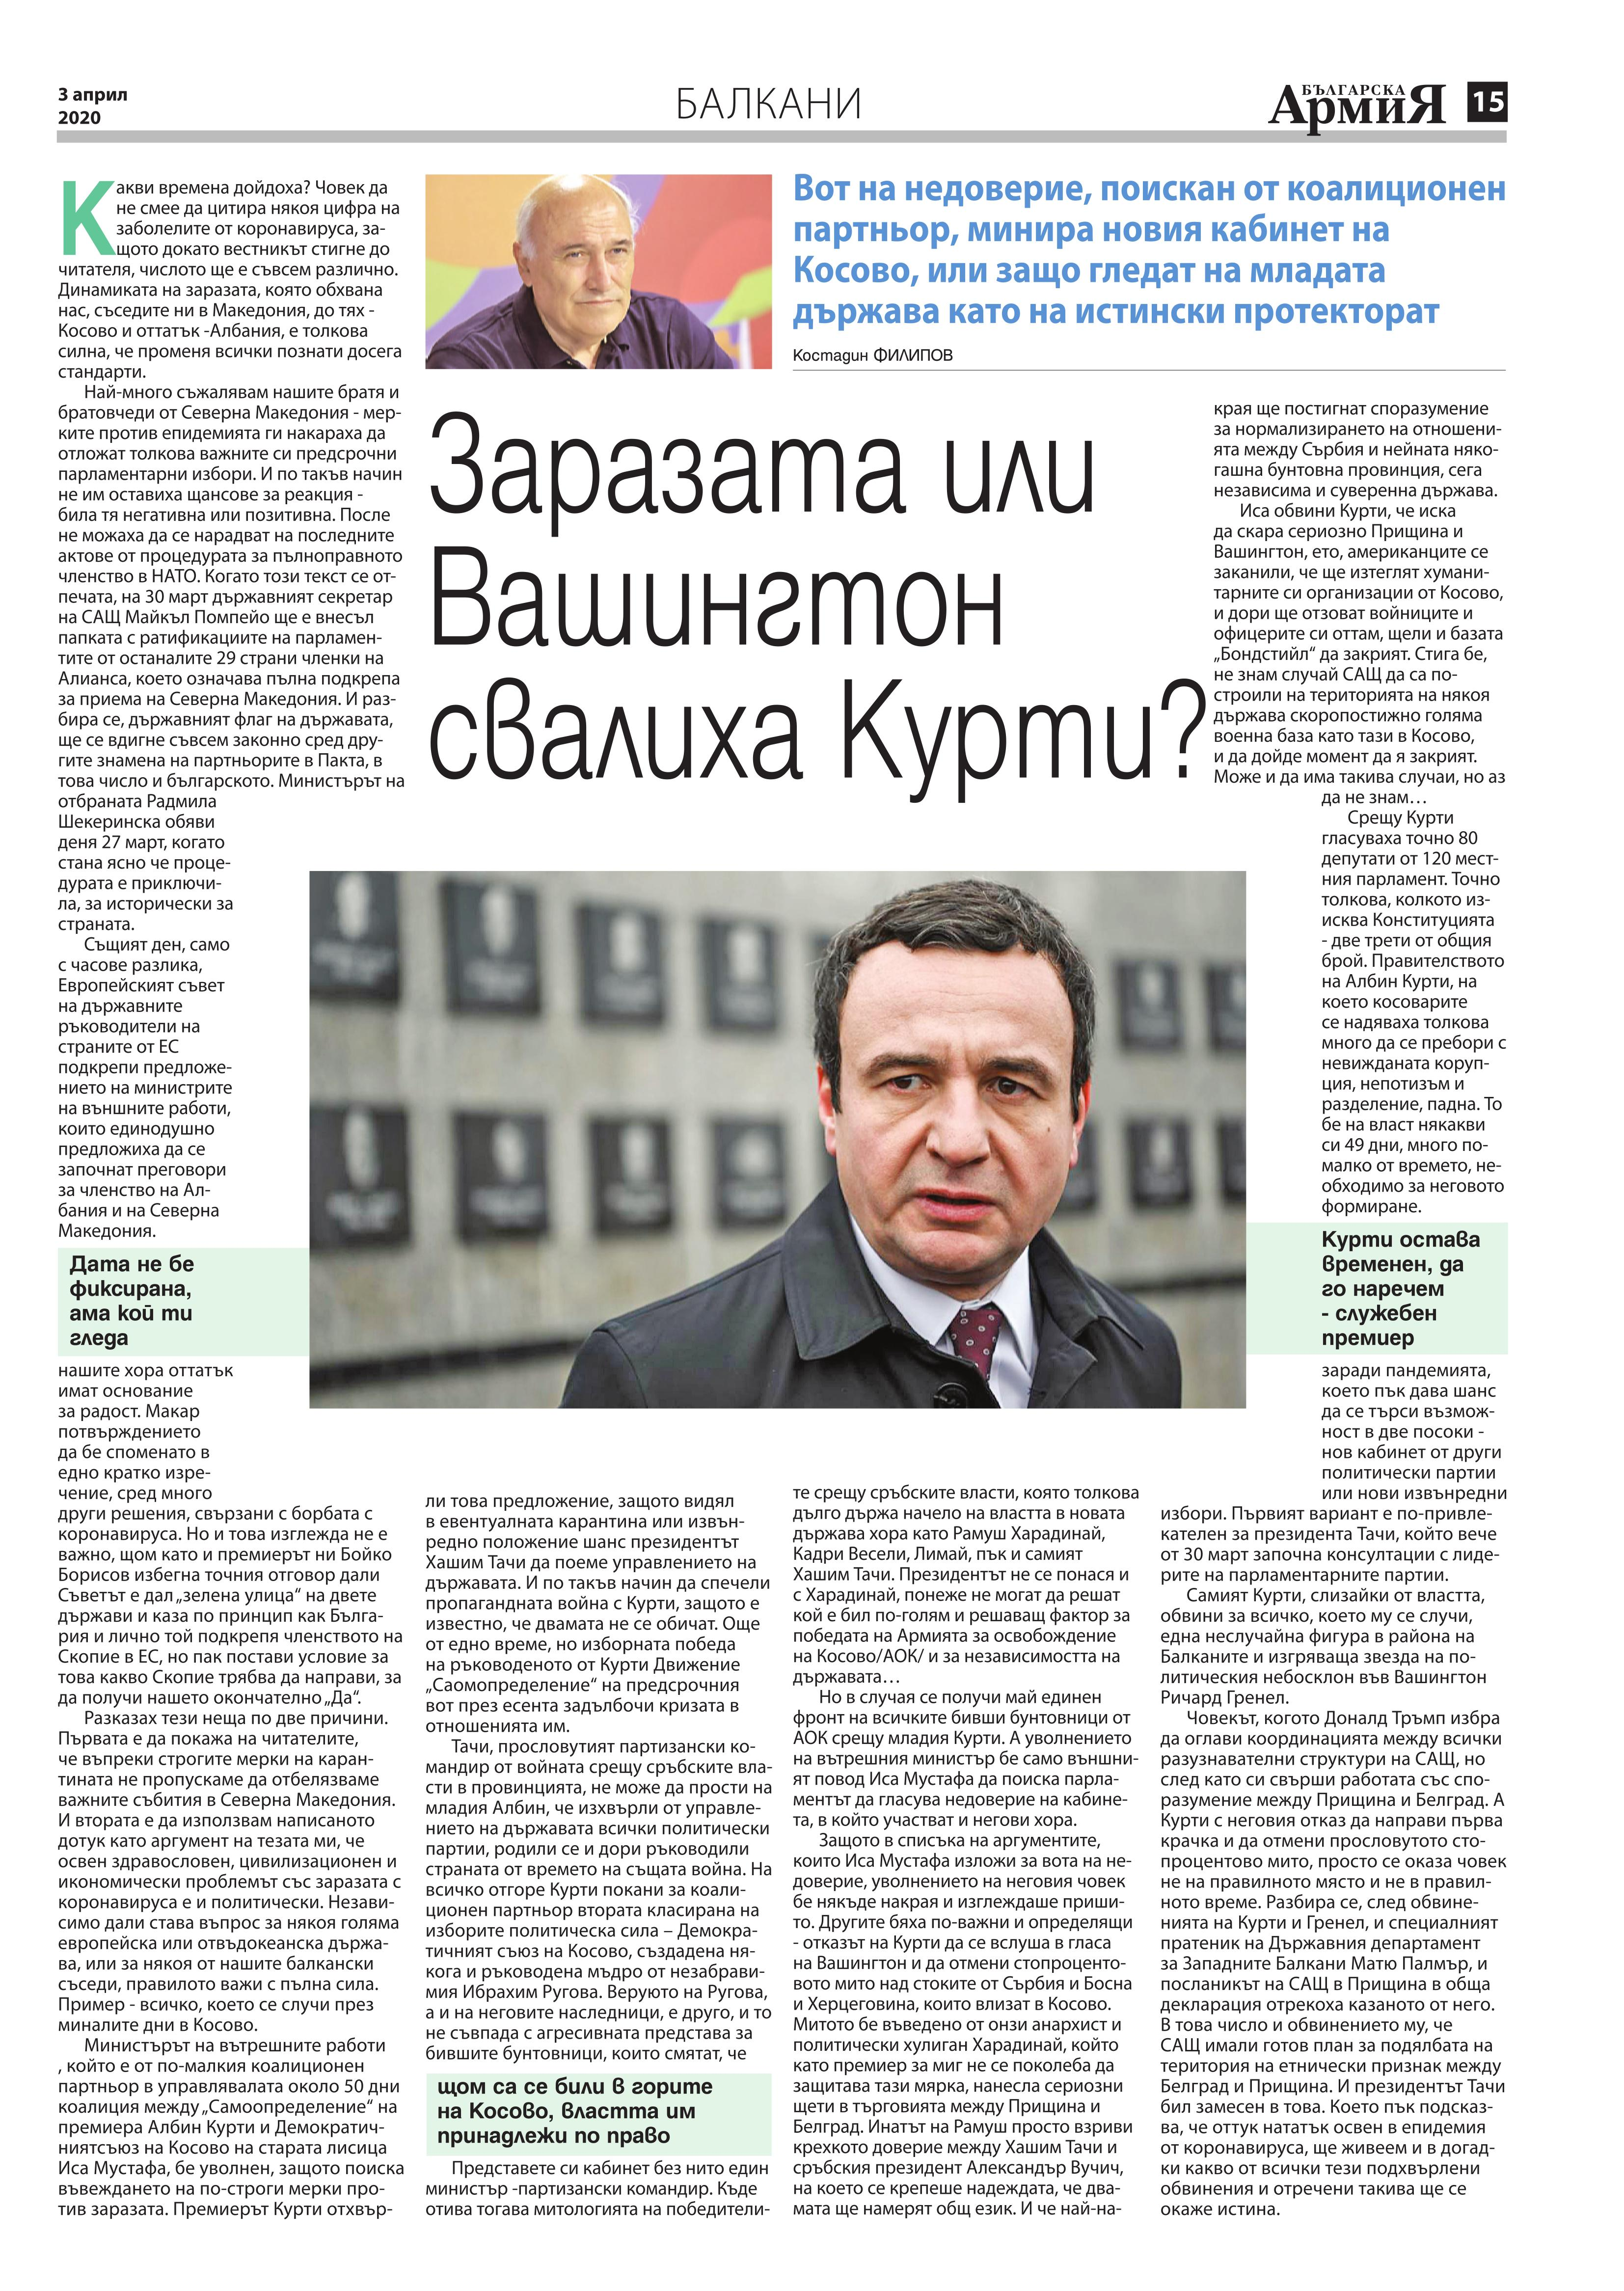 https://armymedia.bg/wp-content/uploads/2015/06/15.page1_-133.jpg